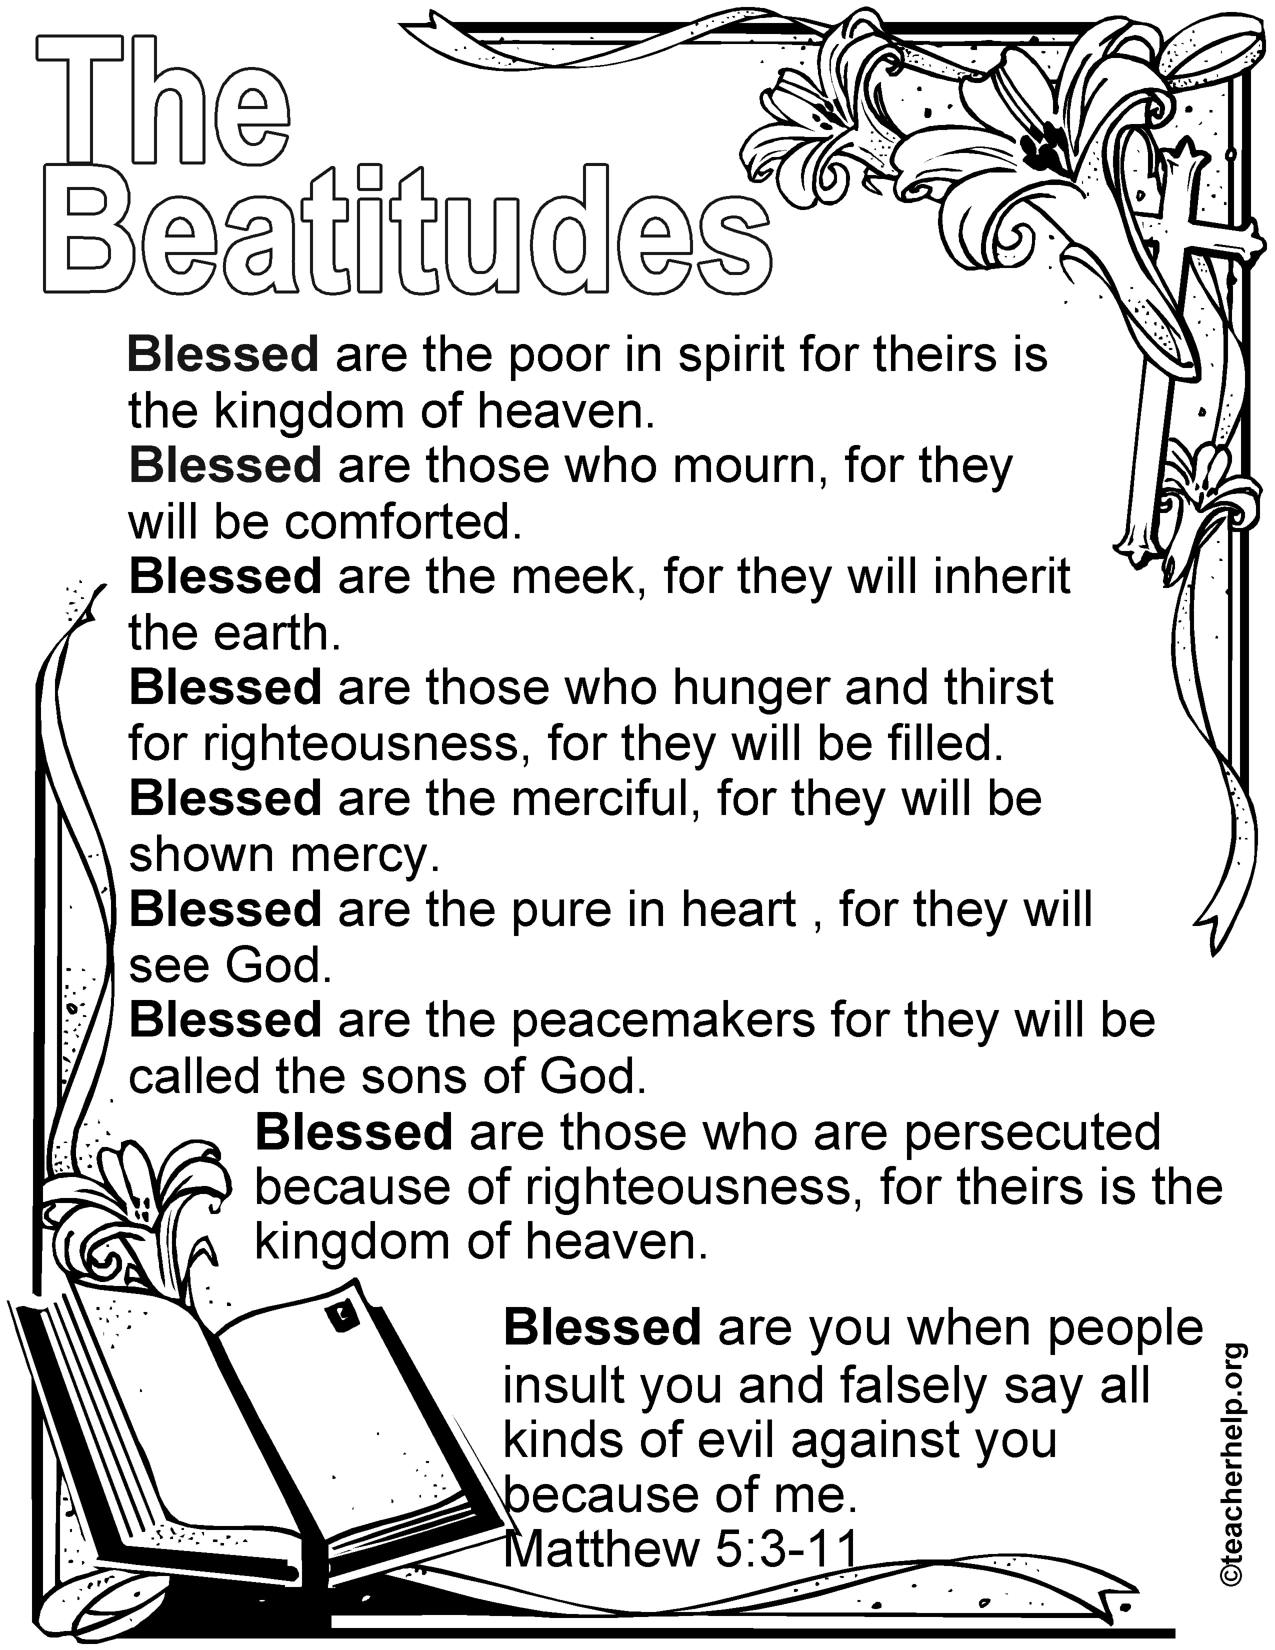 Guided By The Beatitudes Bloor Lansdowne Christian Fellowship Blcf Church